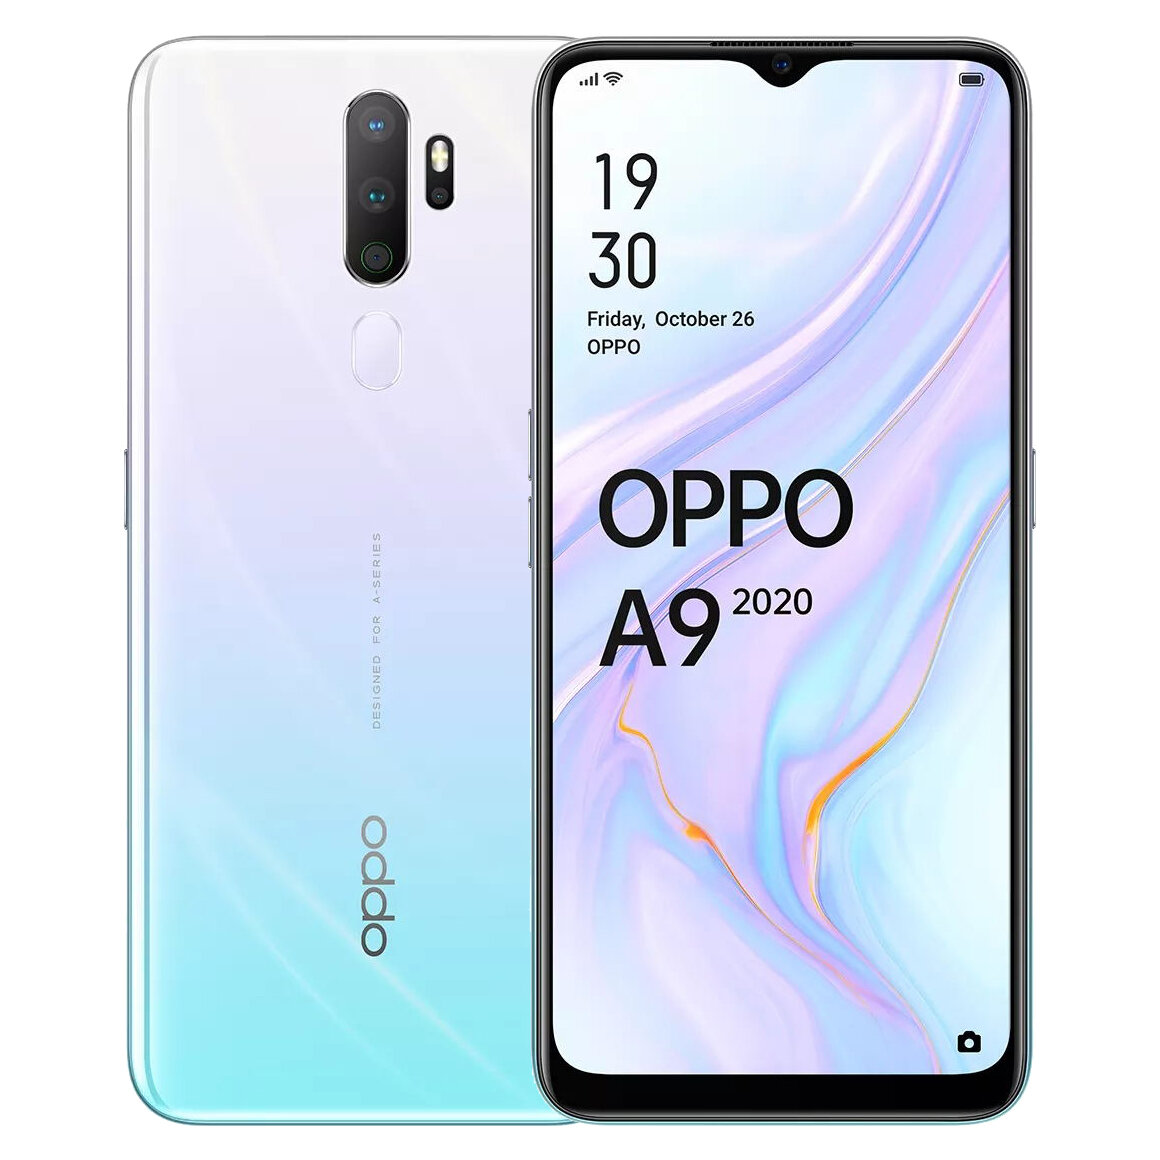 OPPO A9 2020 6.5 inch HD+ 5000mAh Android 9.0 48MP Quad Rear Cameras 8GB 128GB Snapdragon 665 Octa Core 4G Smartphone - Vanilla Mint